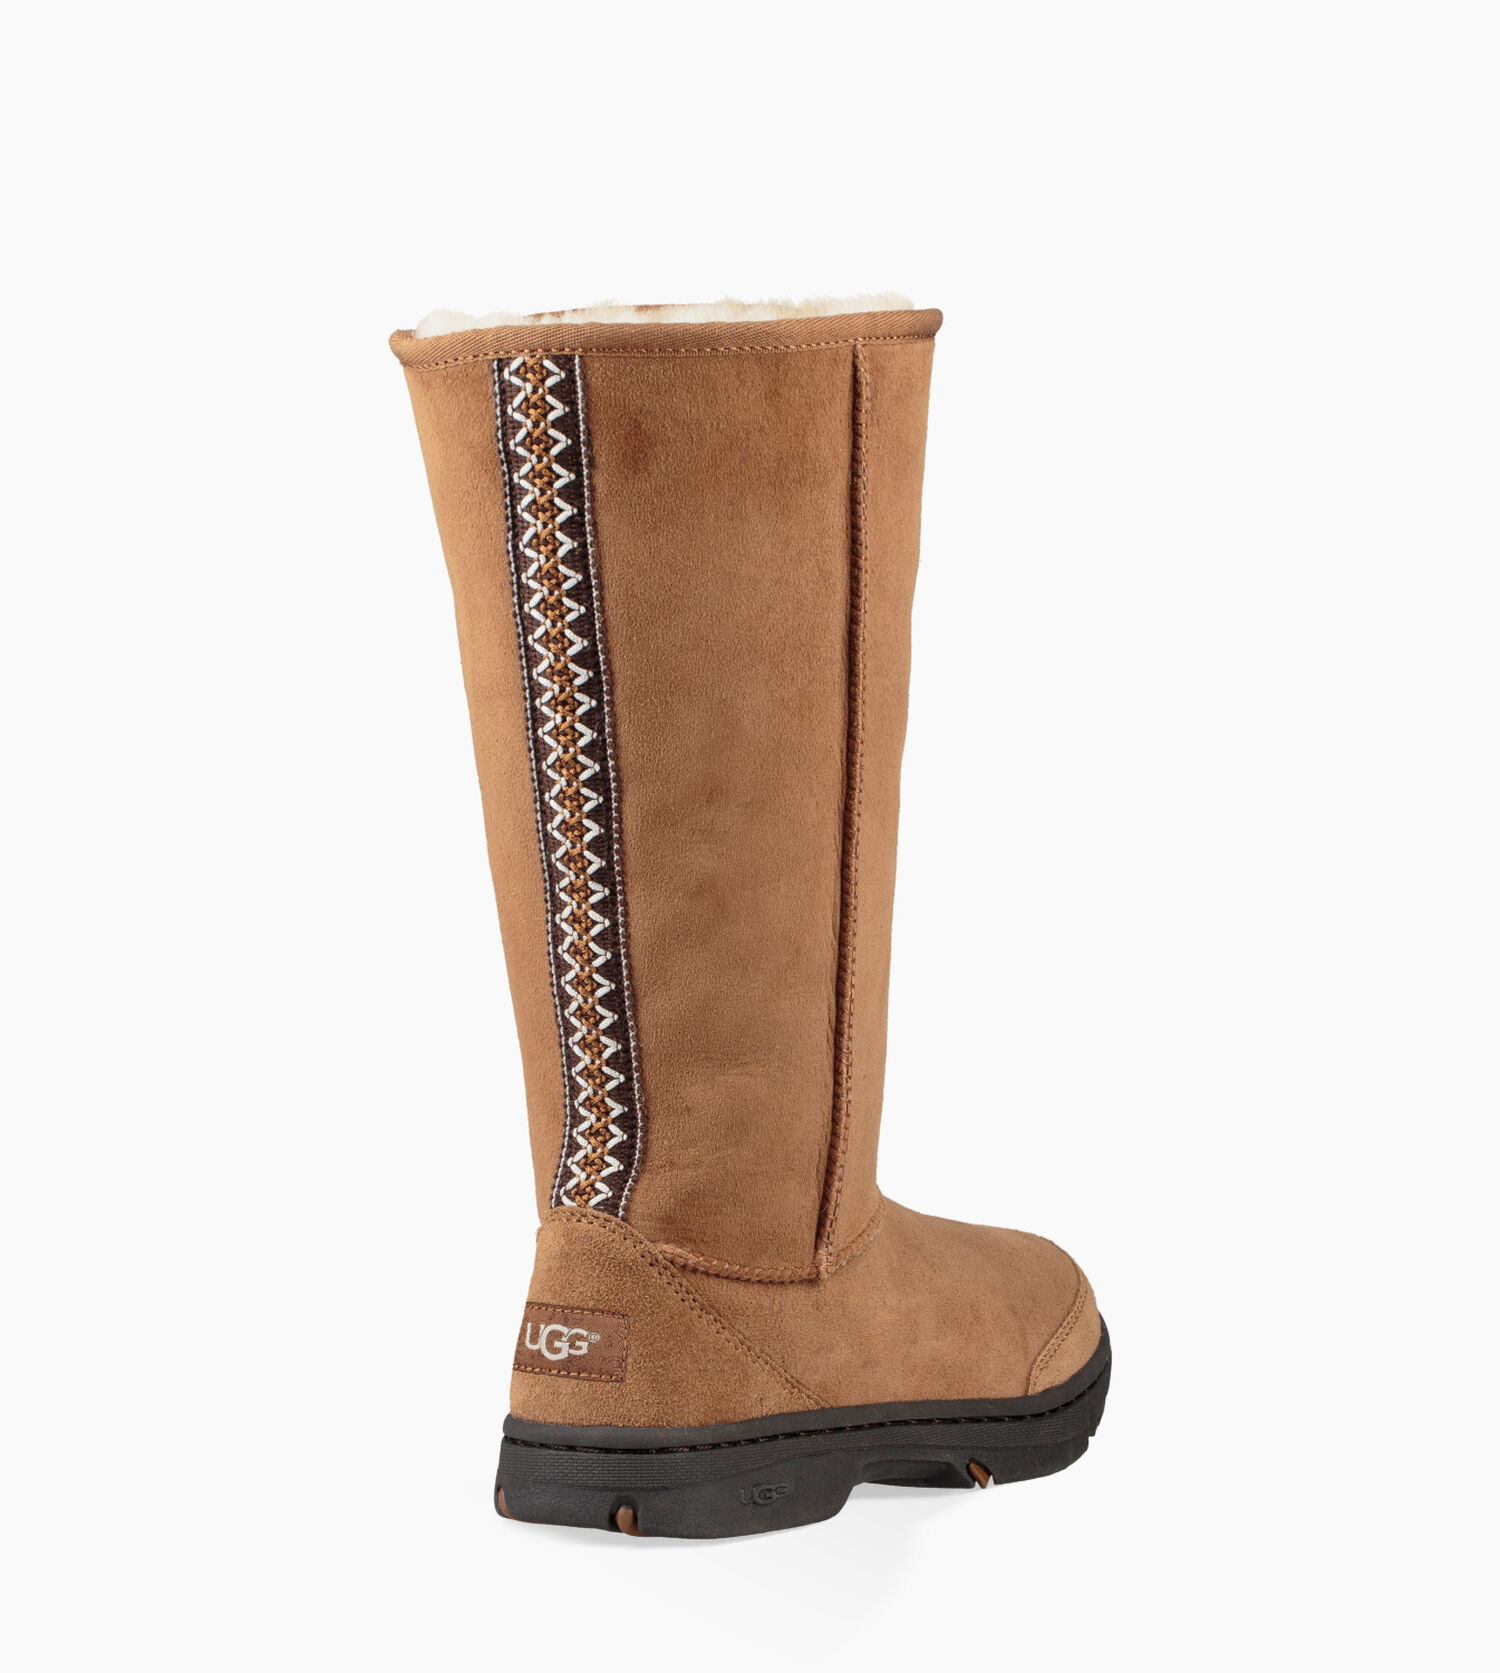 8b1daa19095 Women's Share this product Ultimate Tall